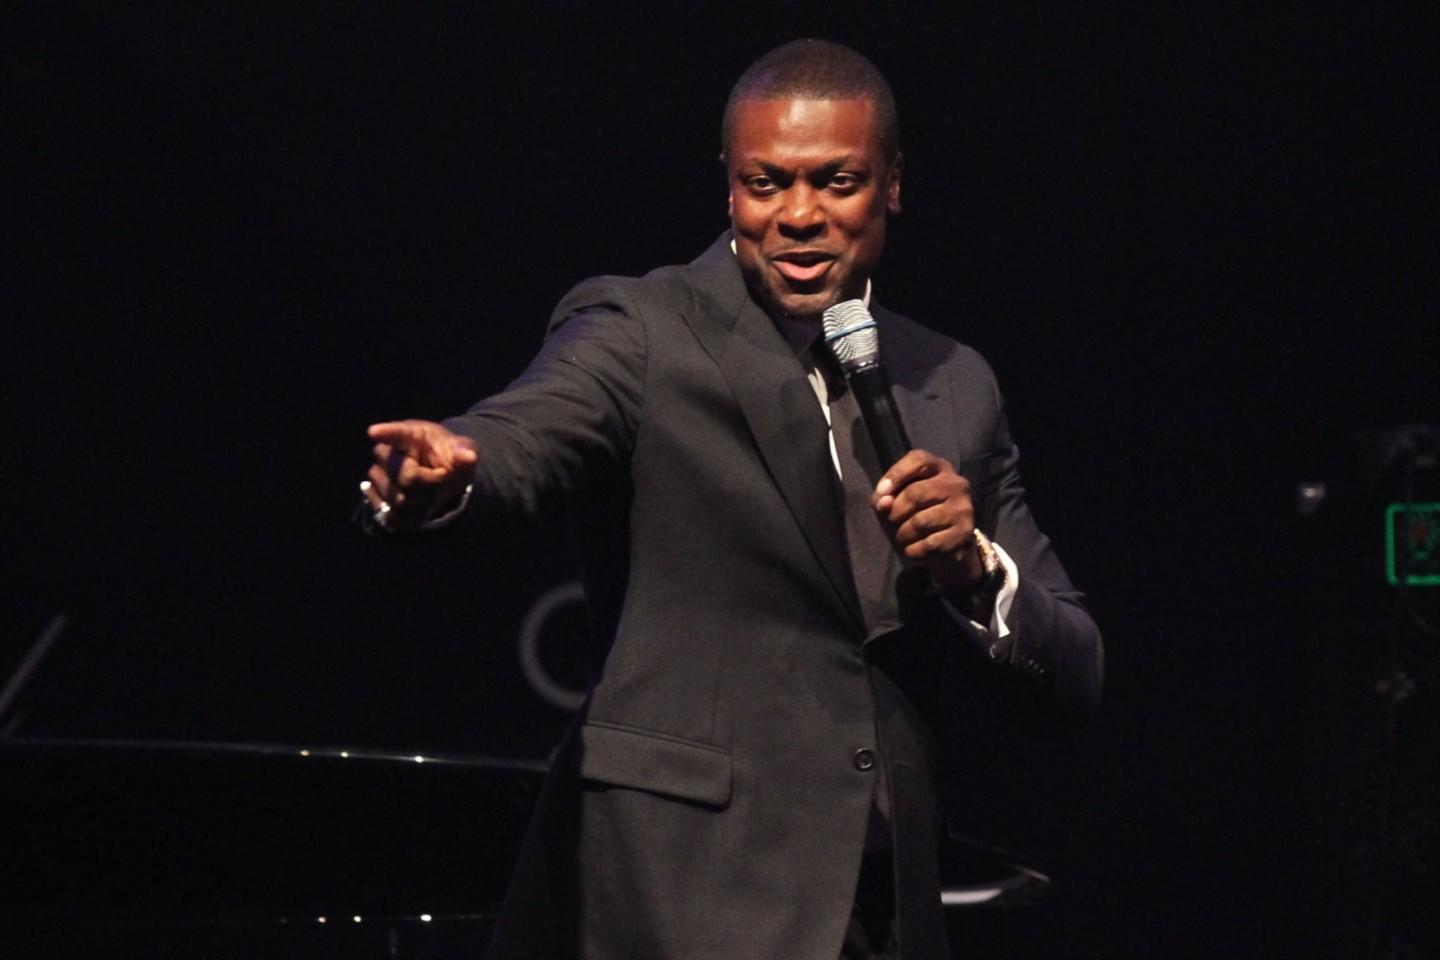 Buy Tickets for Chris Tucker Tour Dates 2019 - viagogo